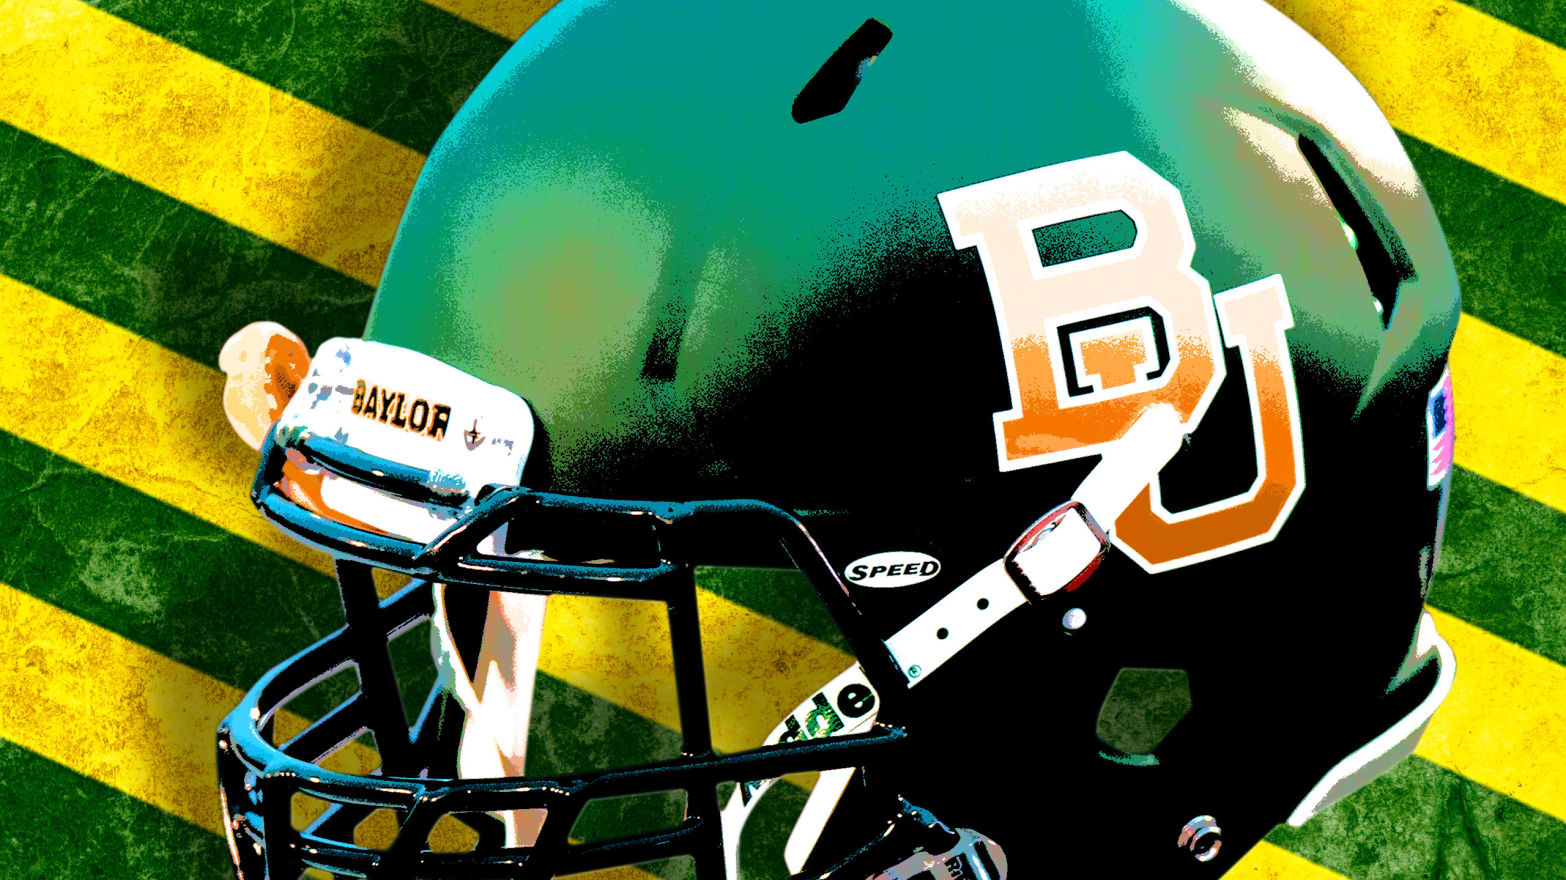 Baylor S Rape Scandal May Just Be Getting Started